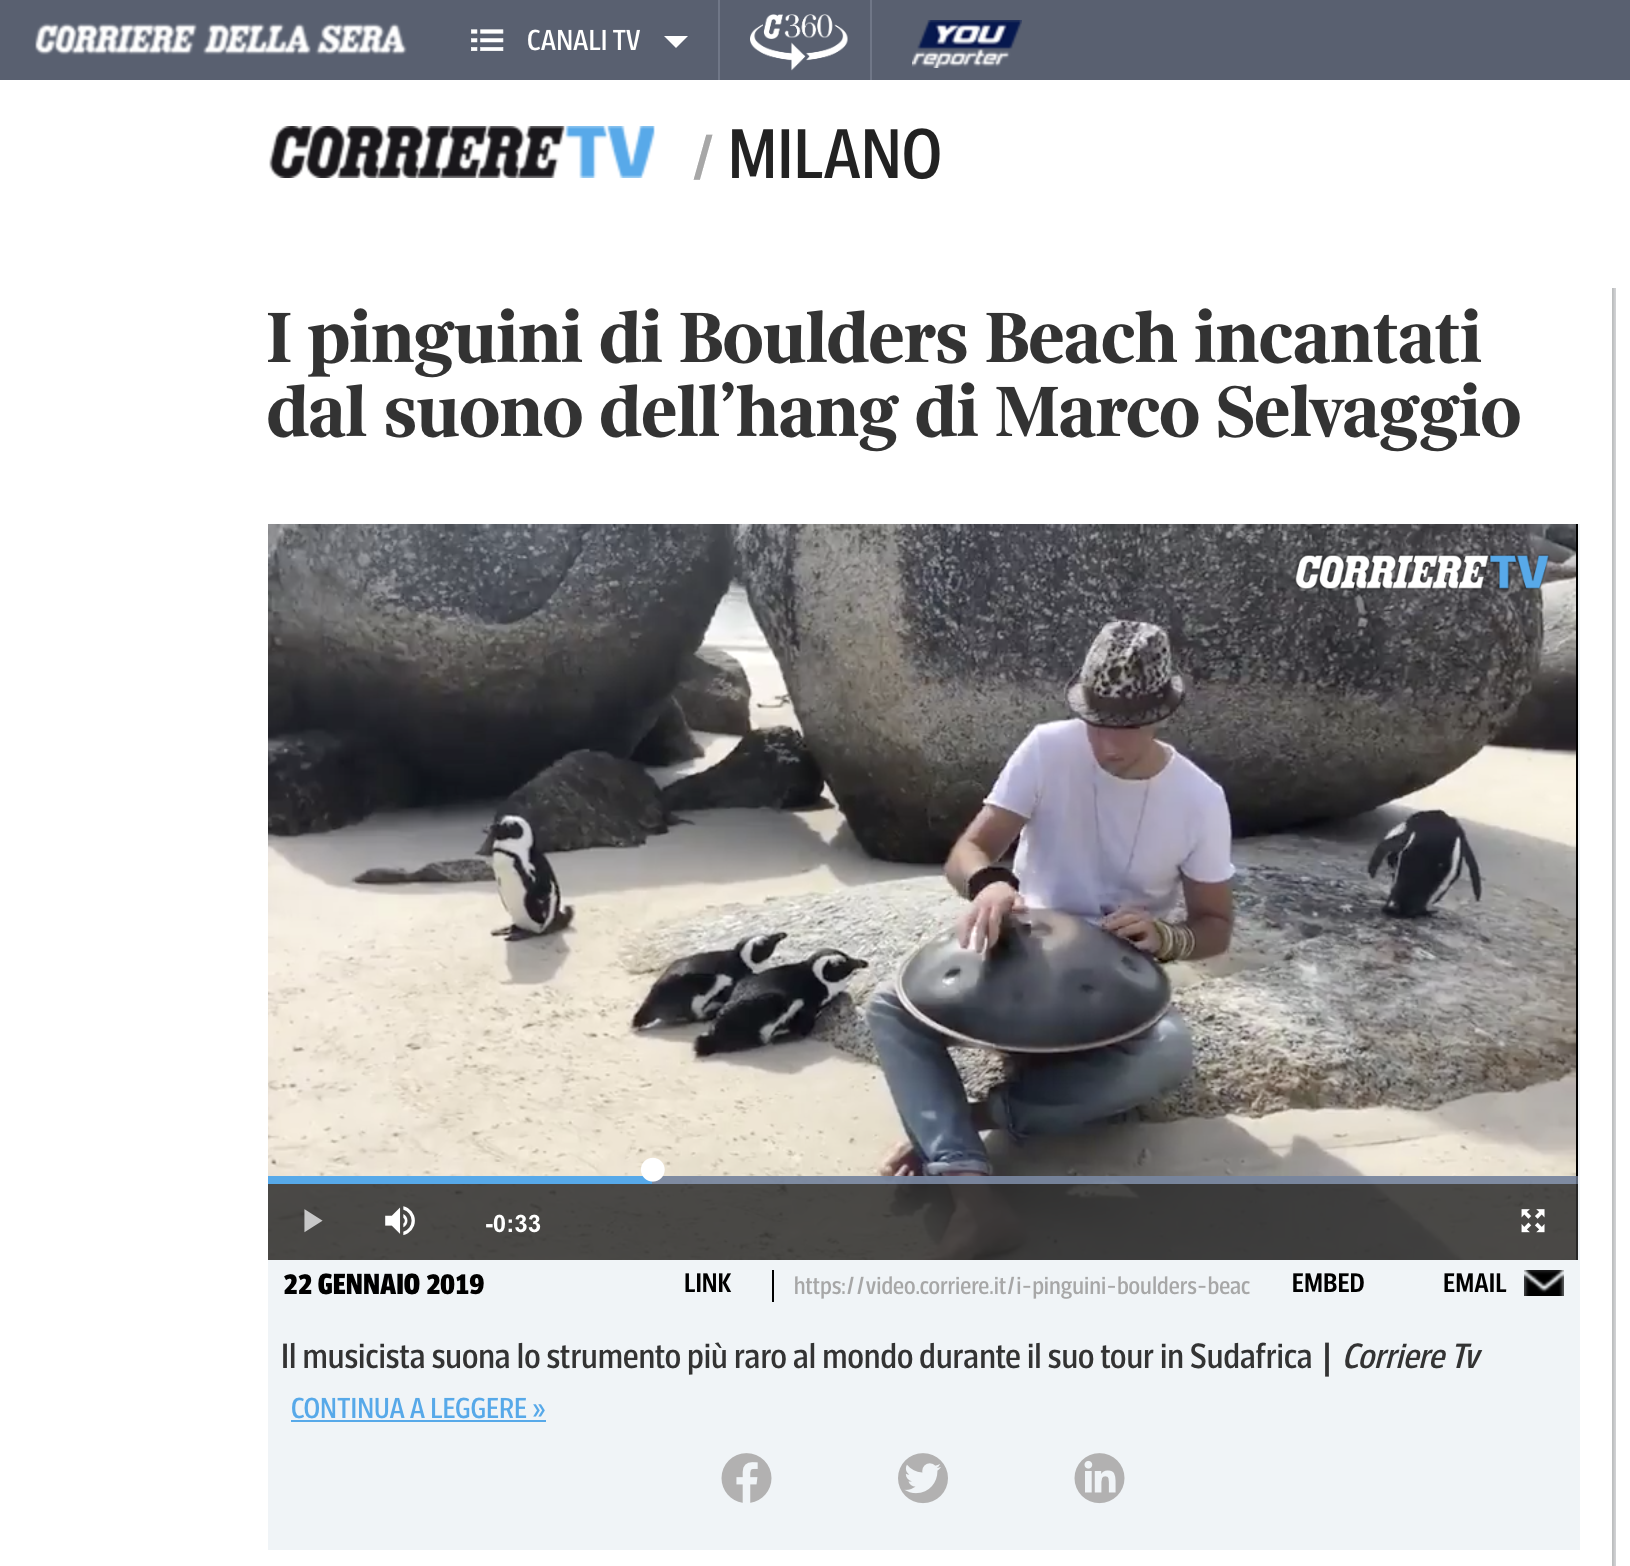 I Pinguini di Boulders Beach - Marco Selvaggio - Video, Tearsheet Image -  Ken Treloar.png